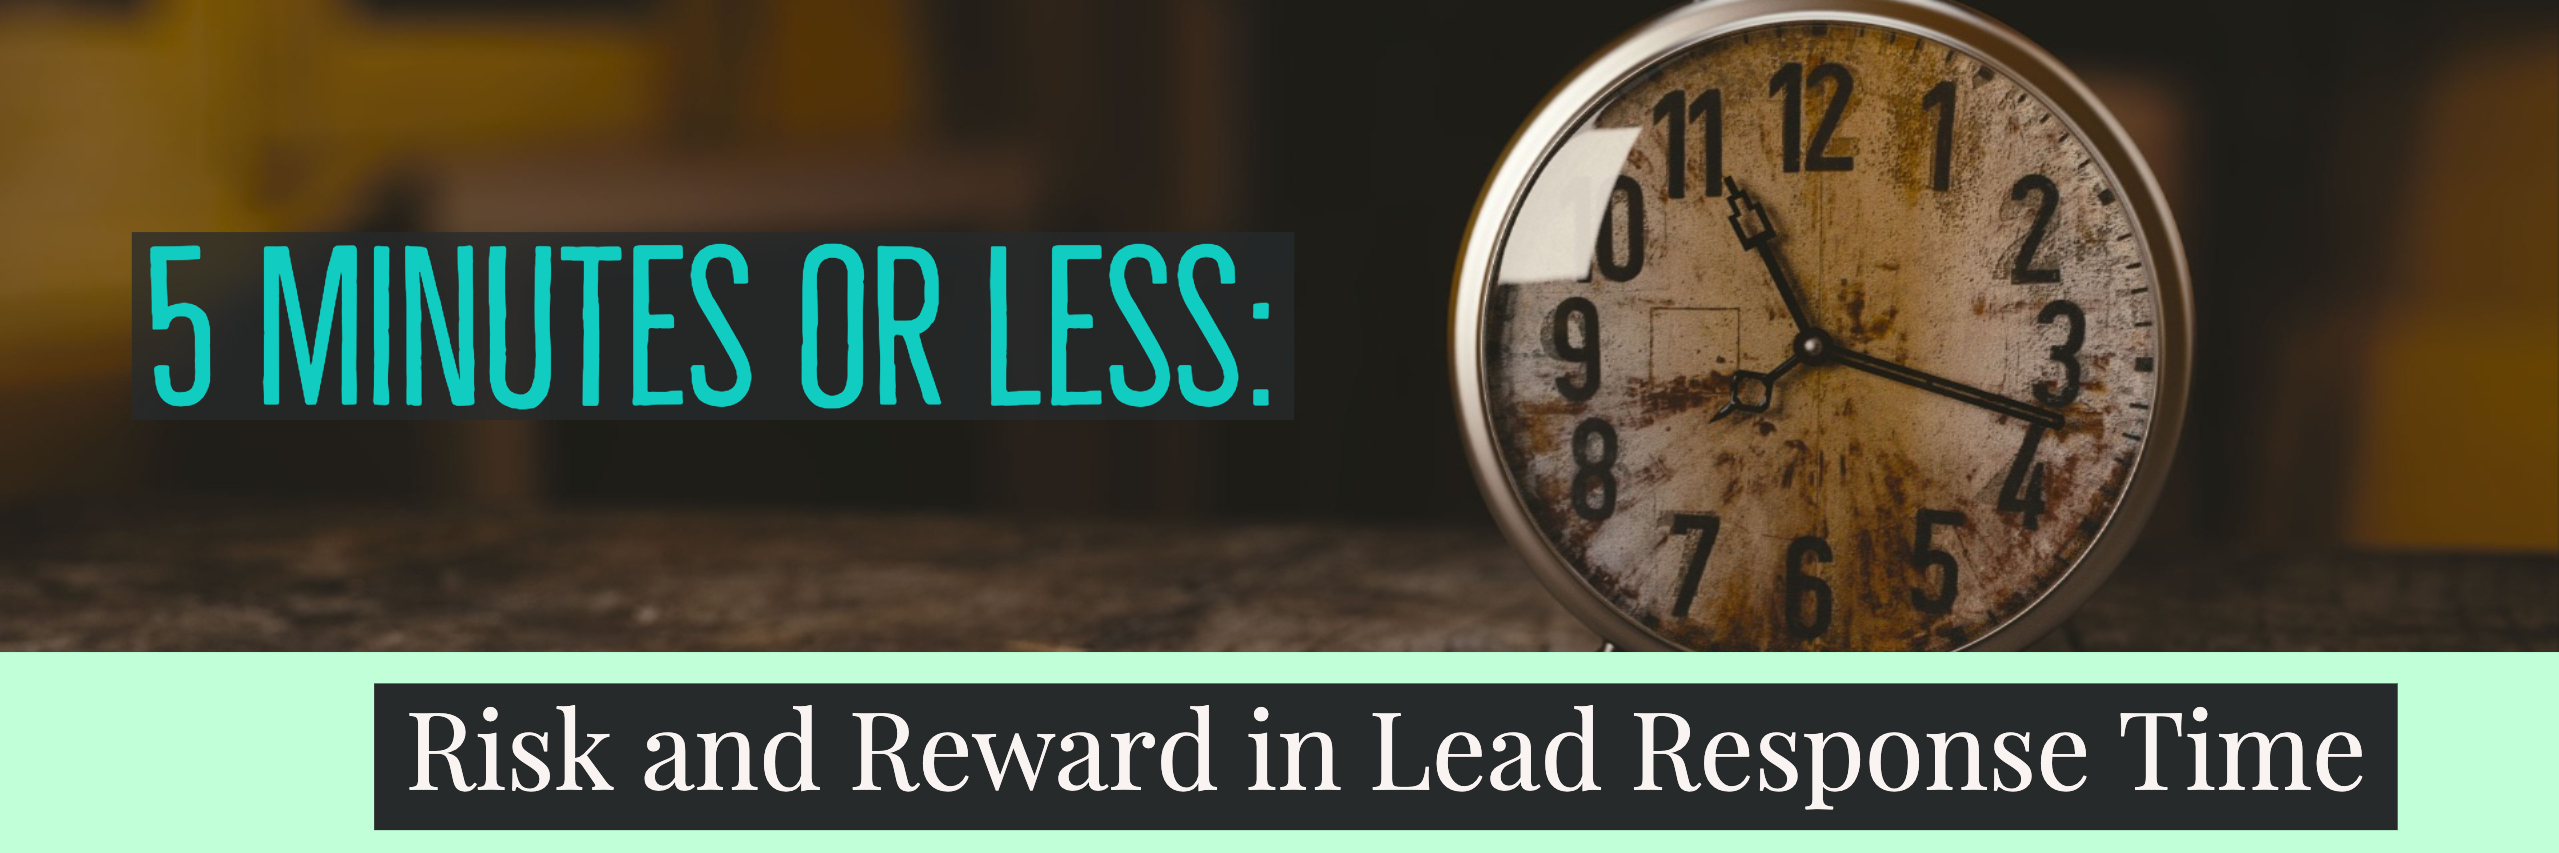 5 Minutes or Less_ Risk and Reward in Lead Response Time